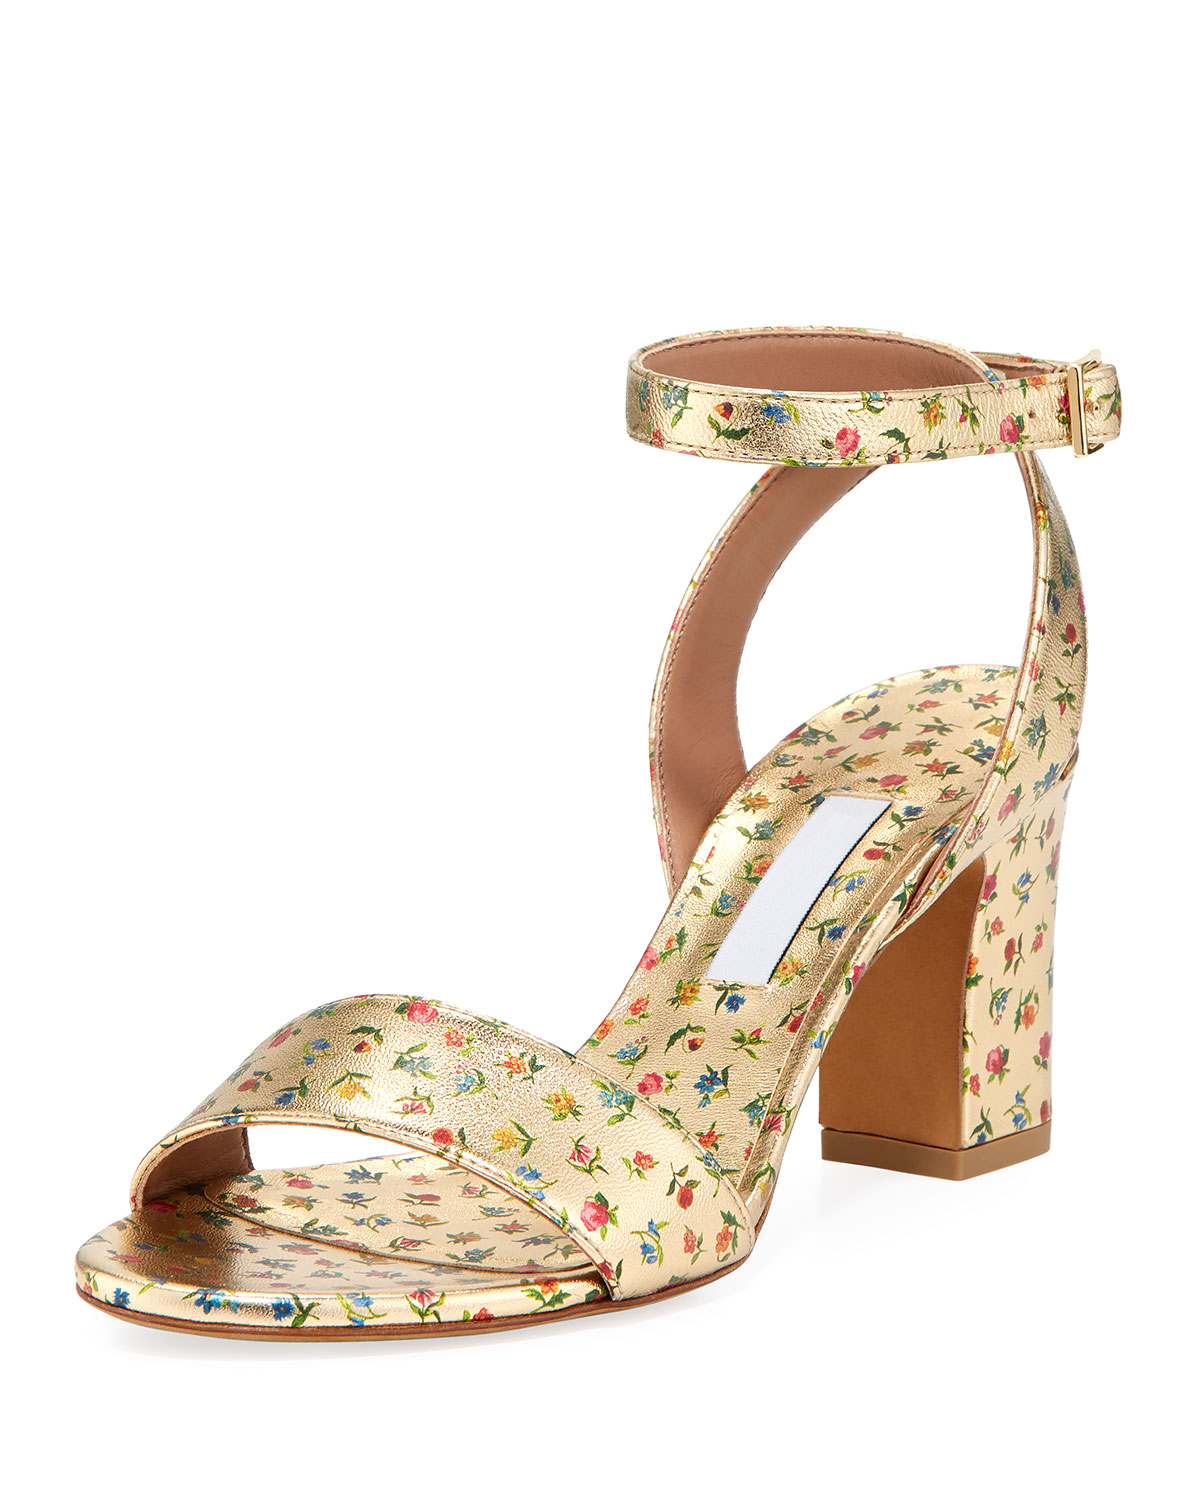 16cc79f16f9f Tabitha Simmons Women s Leticia Ankle Strap Block-Heel Sandals In Gold